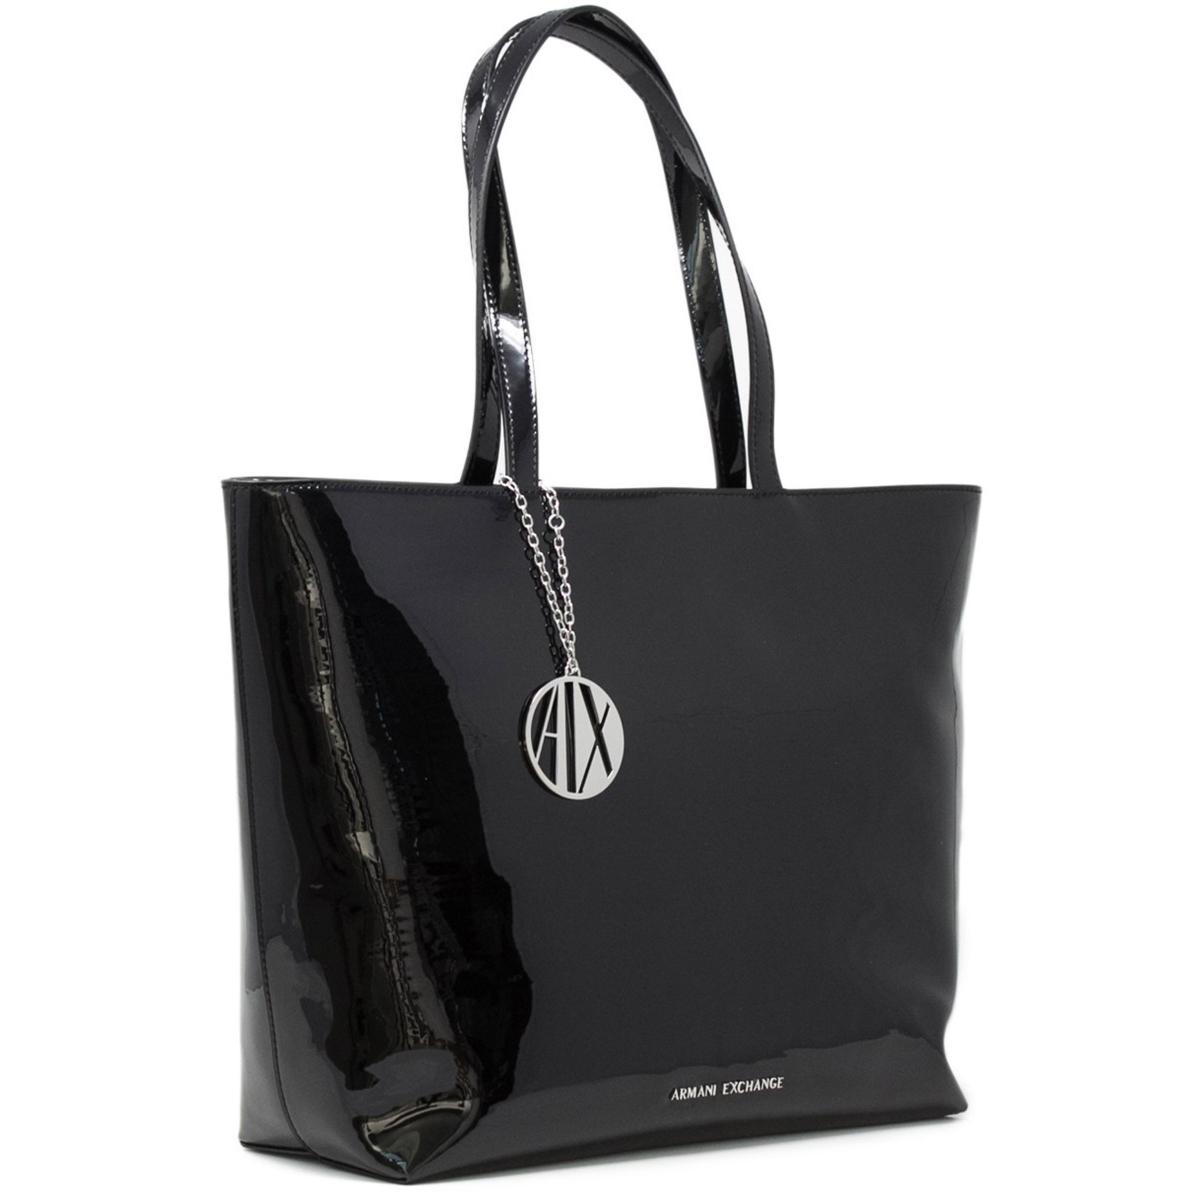 Borsa Armani Exchange Shopping Bag in vernice da donna rif. 942426 CC713